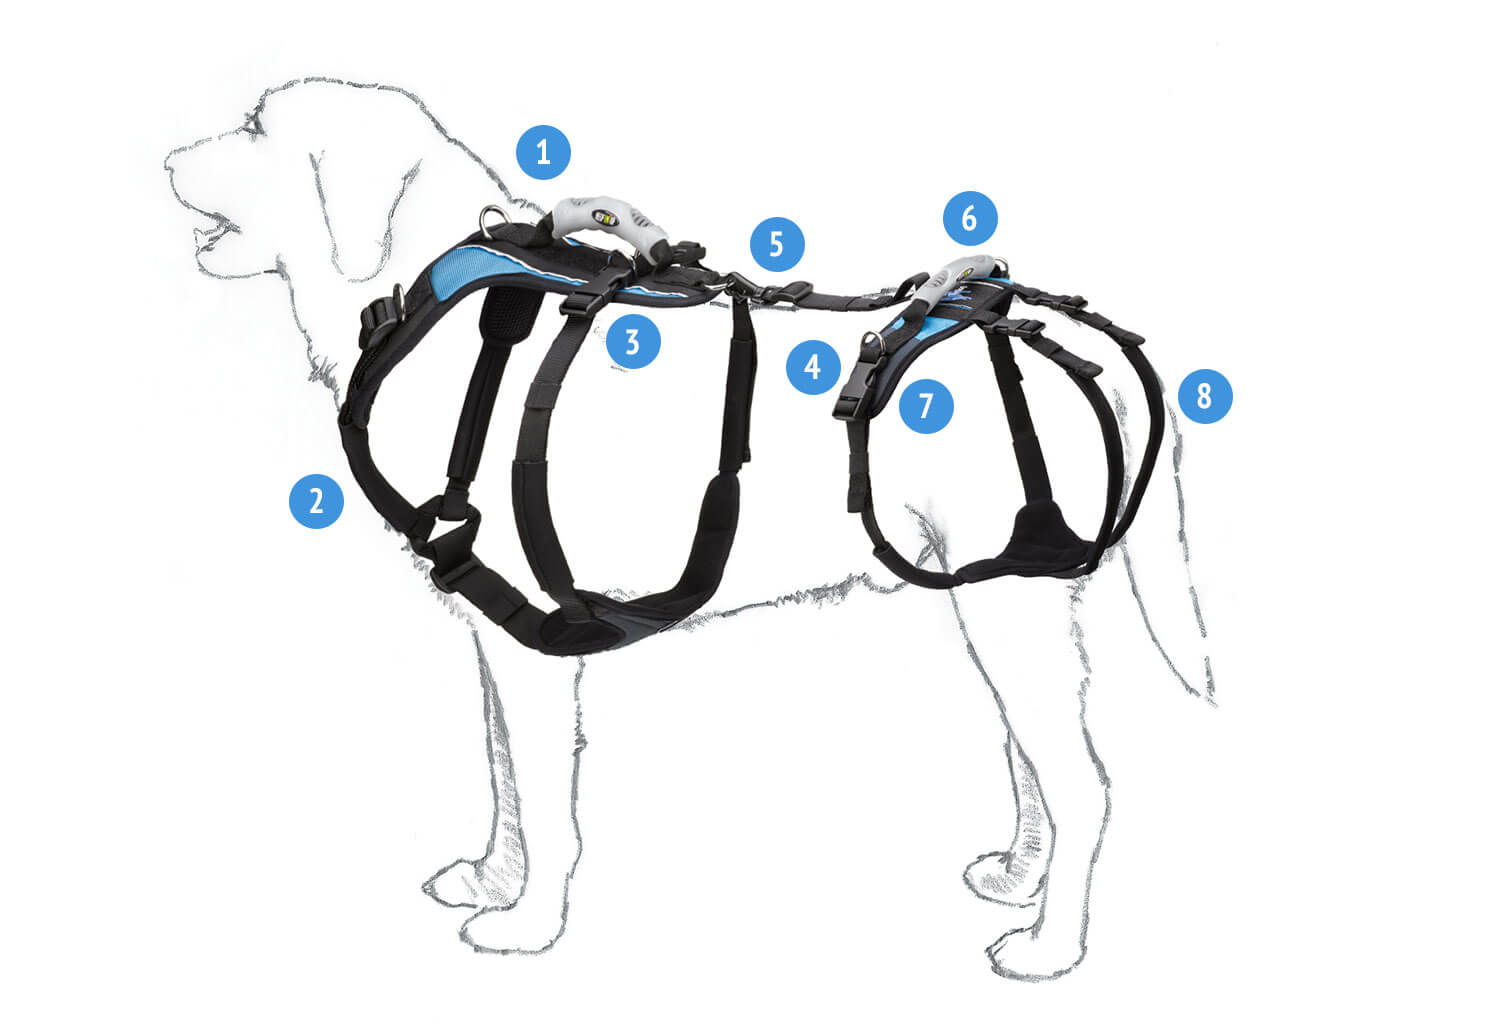 The Help 'Em Up Harness with Hip Lift - Fitting Illustration